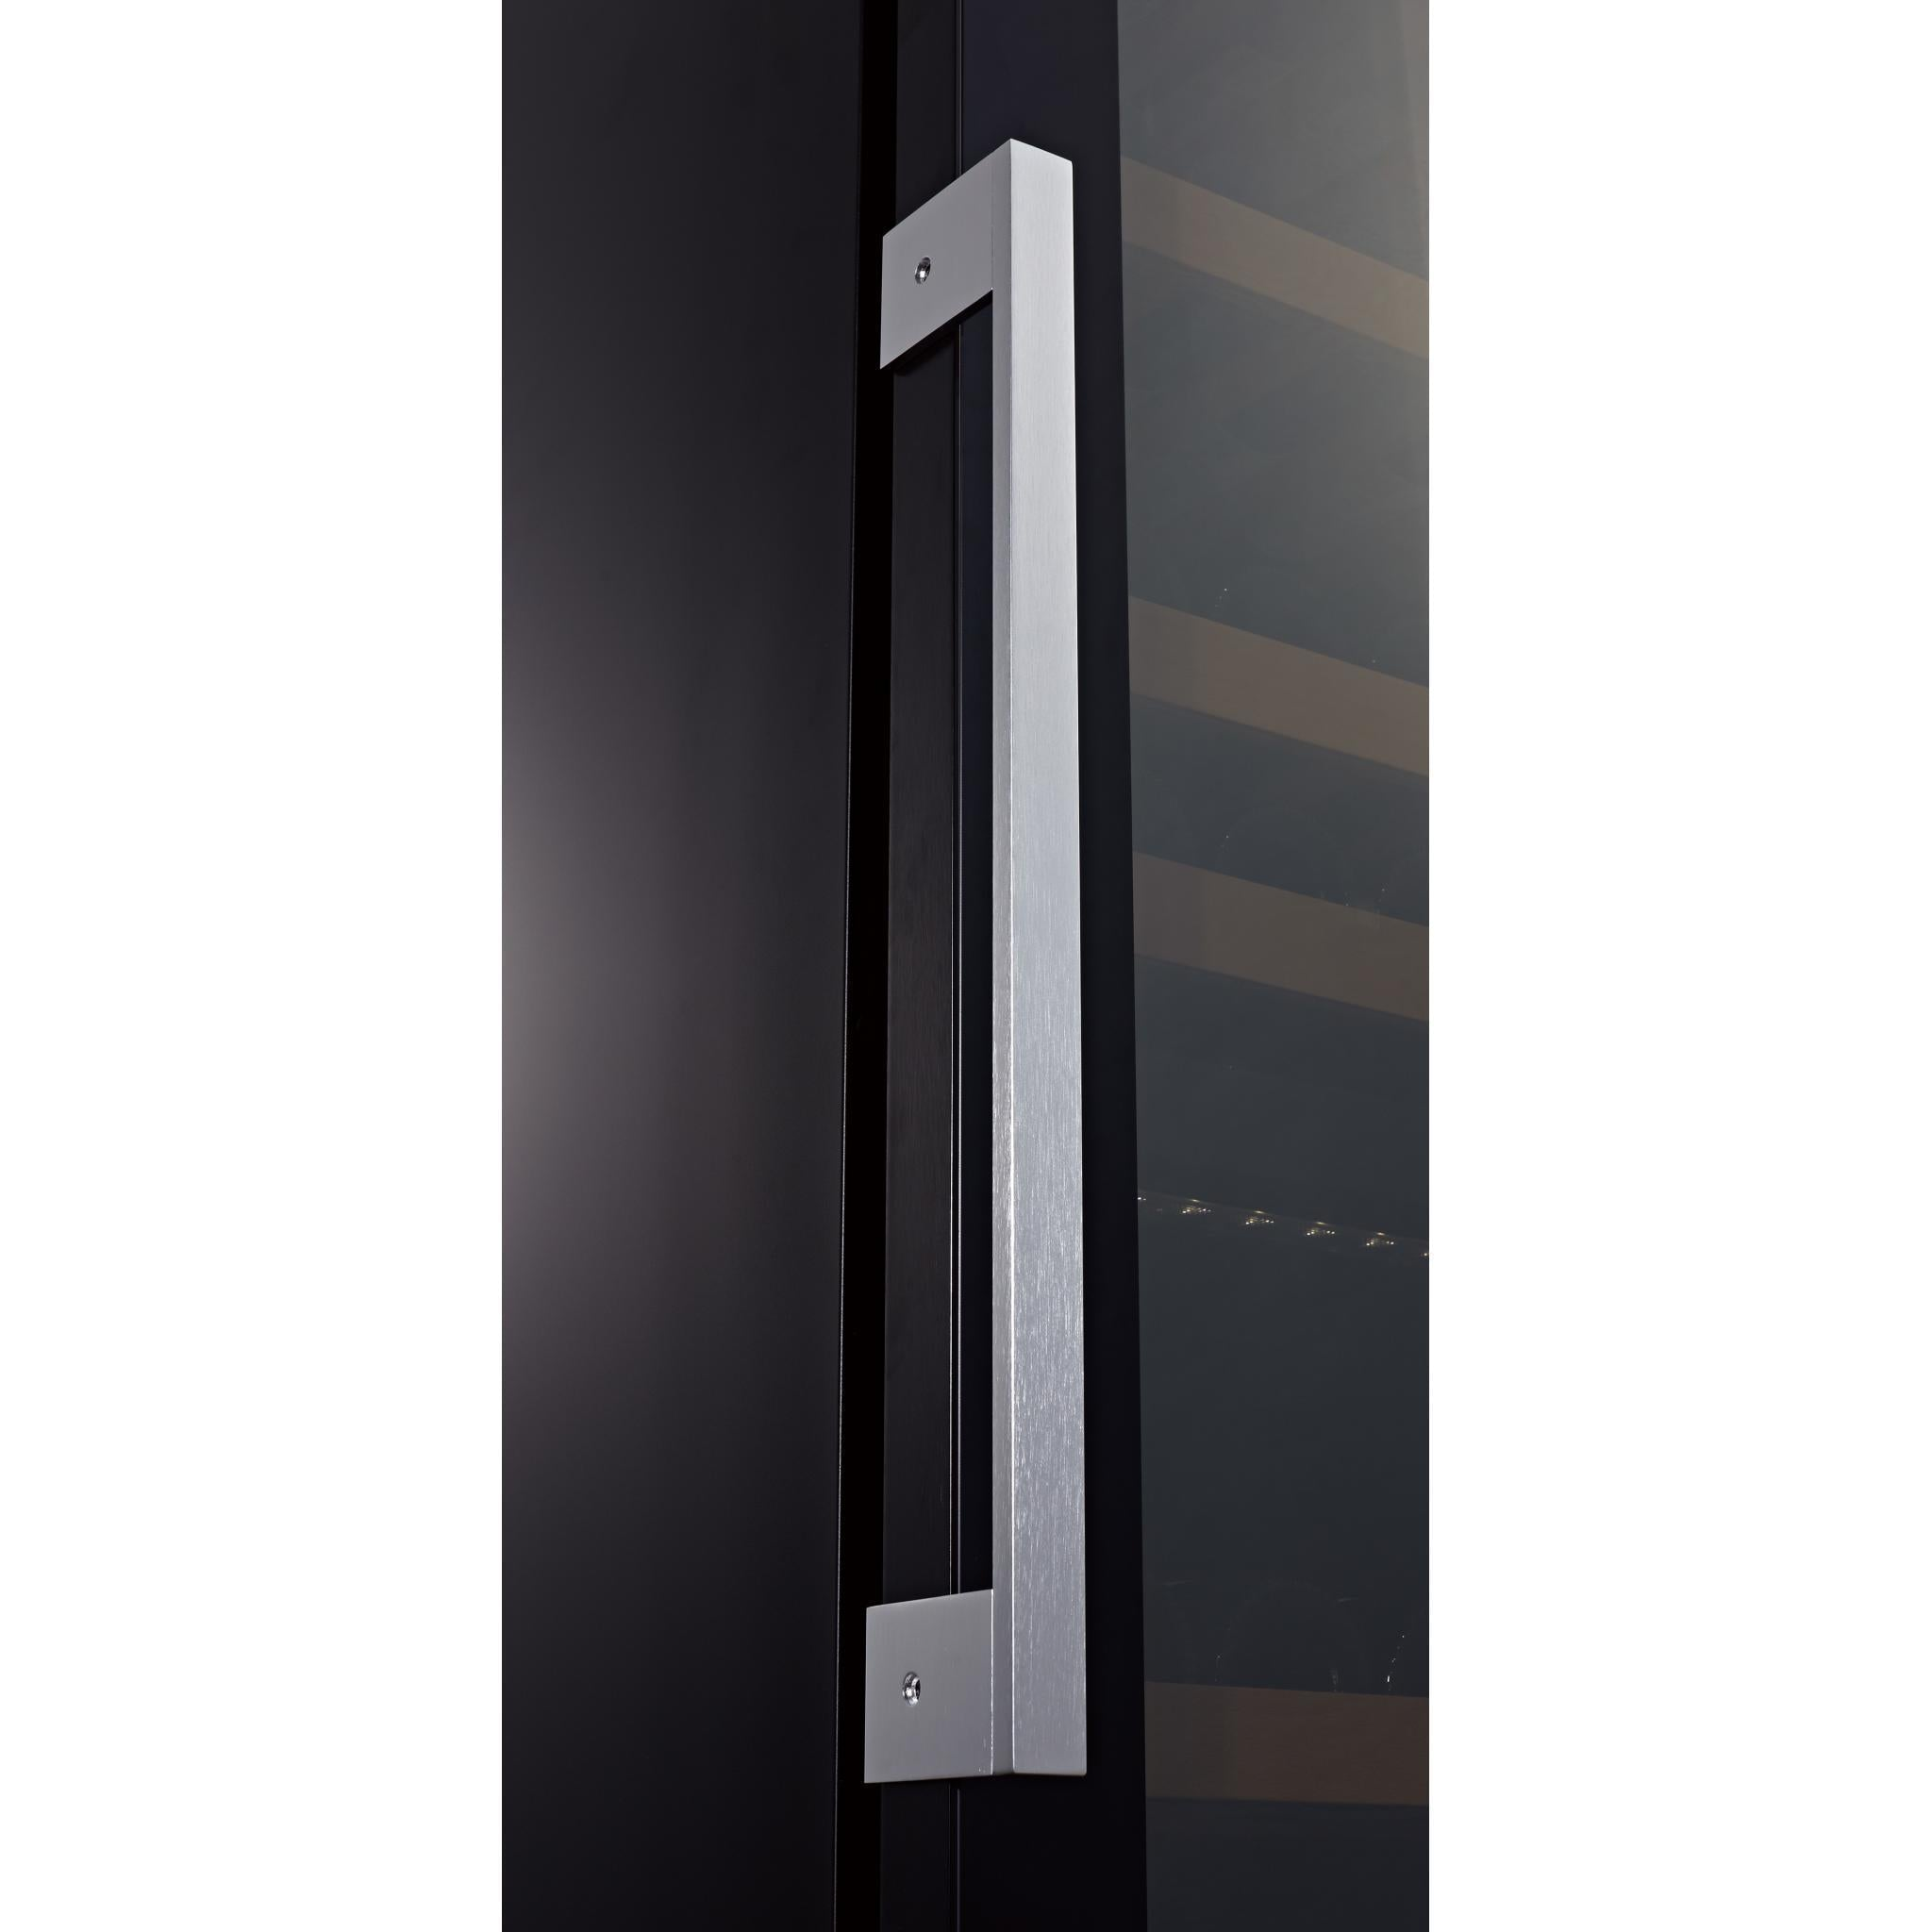 Swisscave WLB-460DFLD - Black Edition Dual Zone Wine Cooler / Wine Fridge with Gastro Furnishing (124-210 BOT) - 595mm Wide